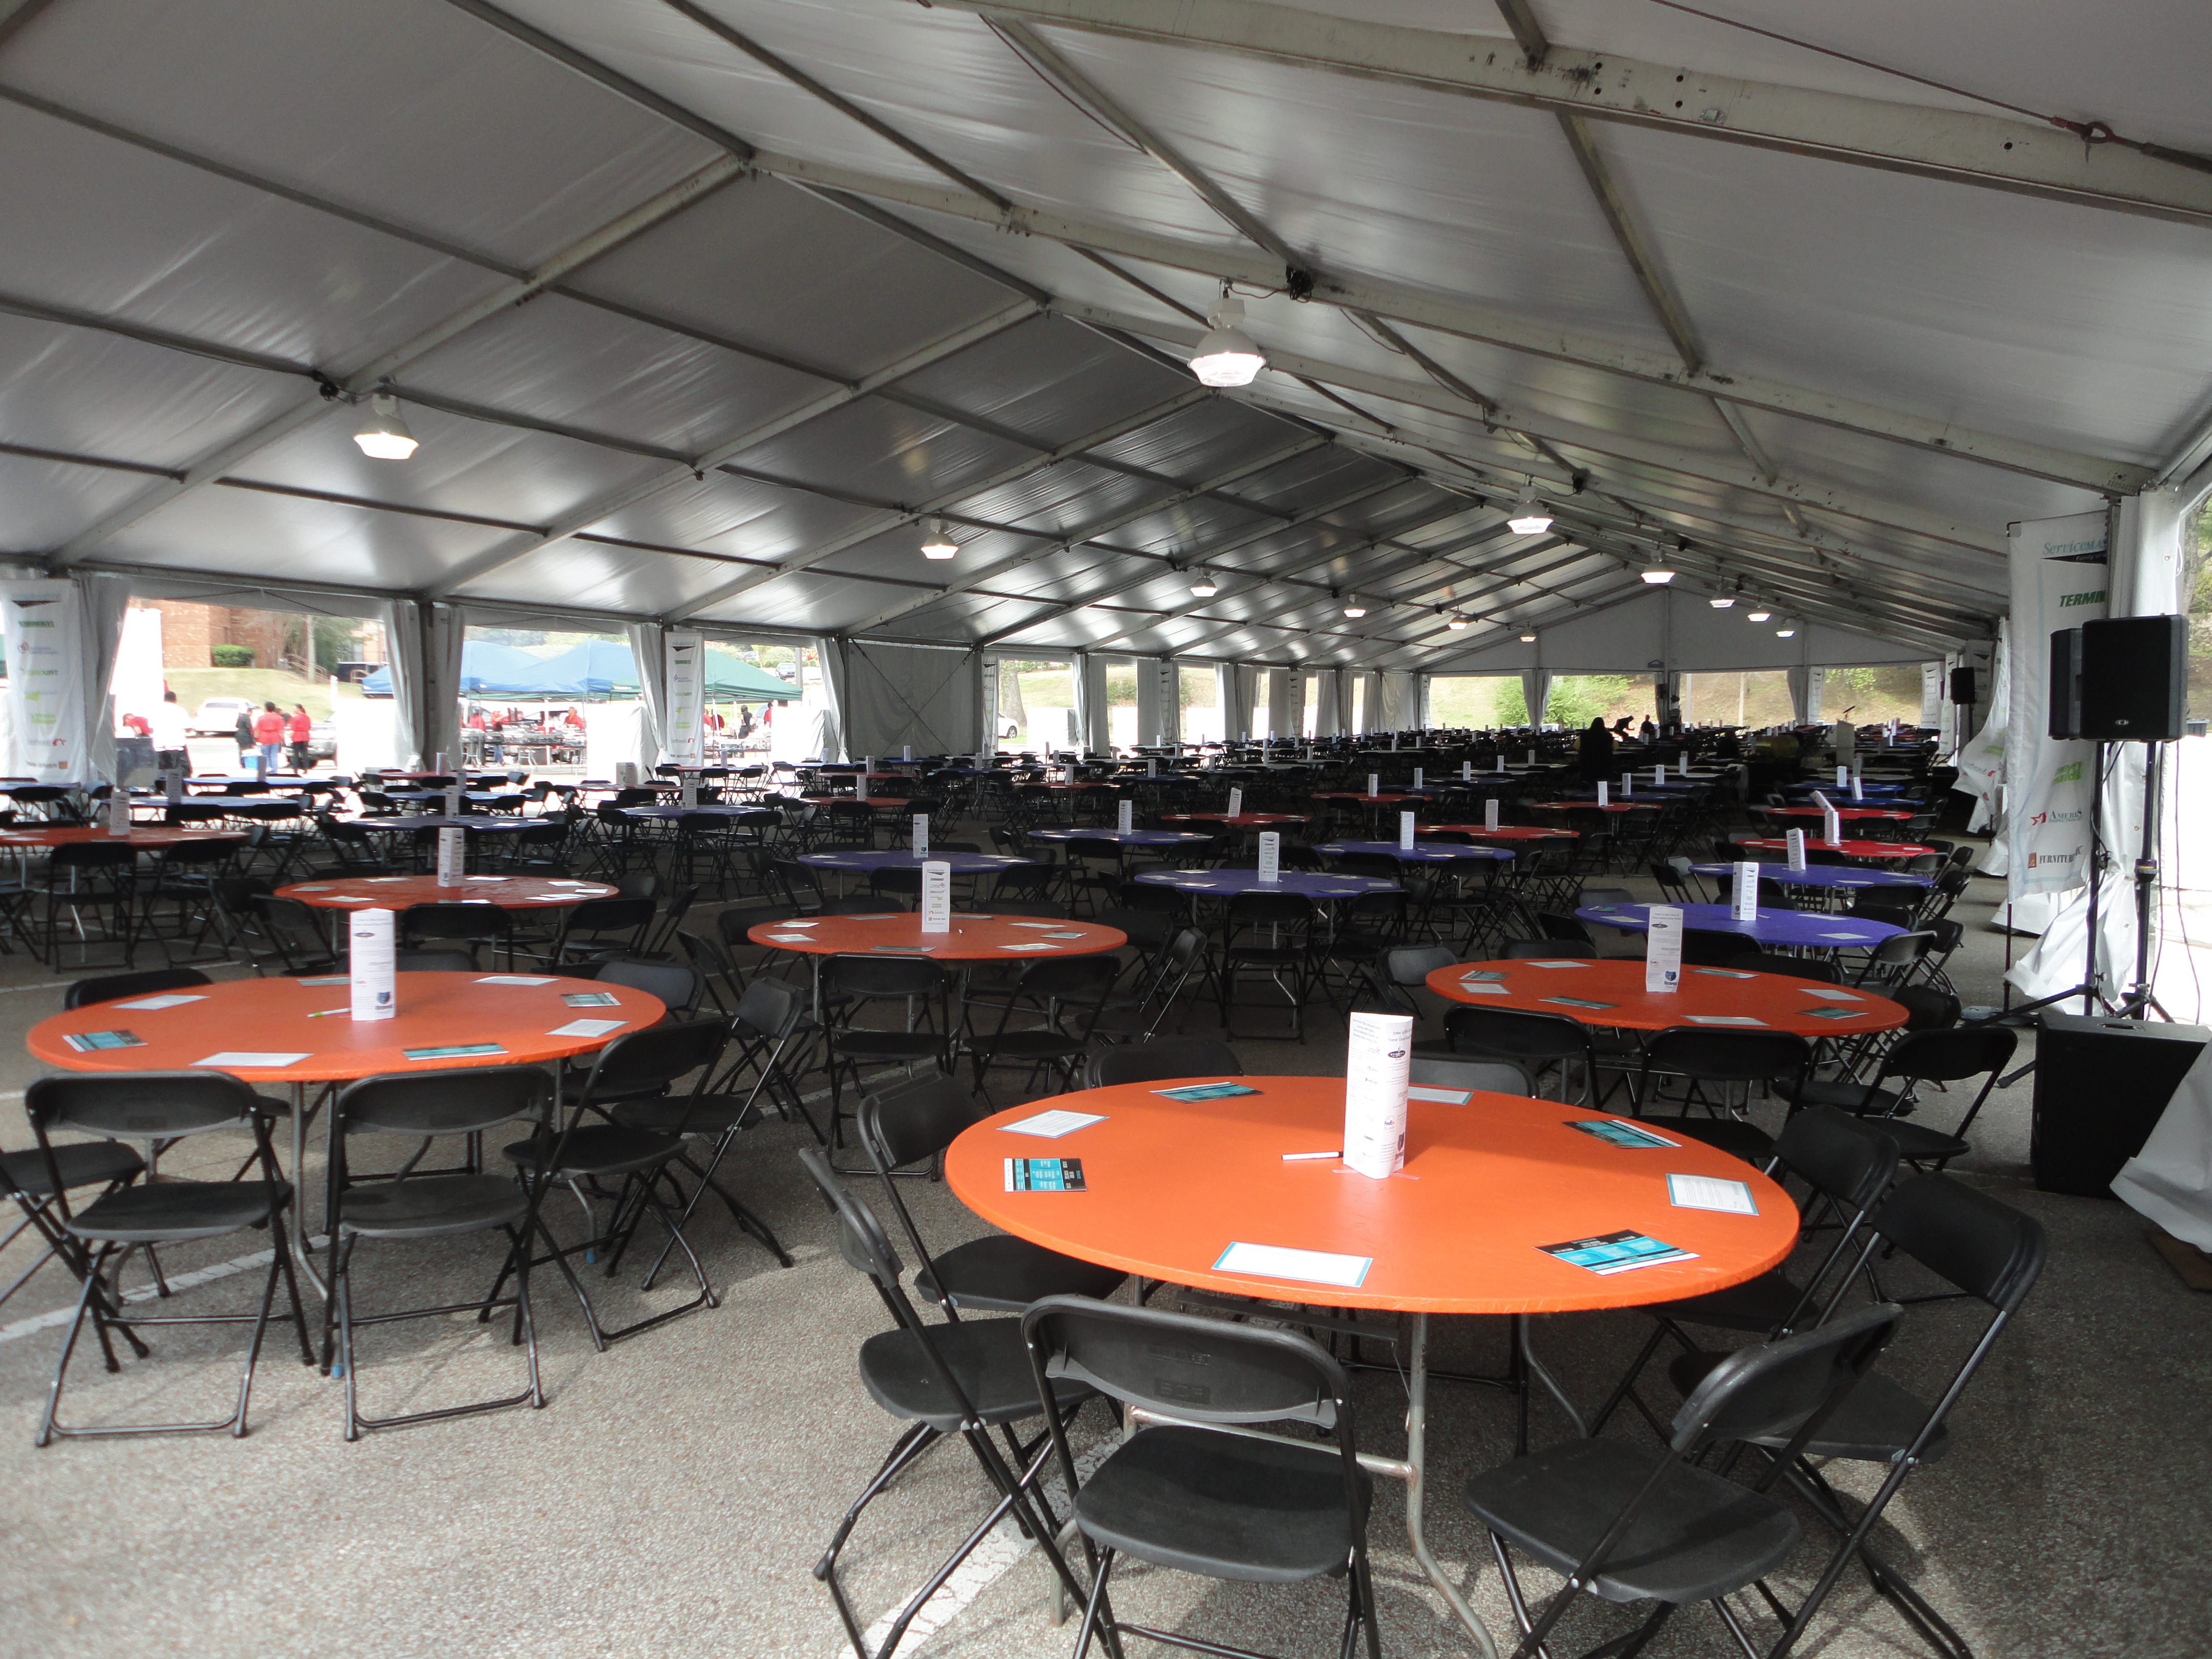 chair cover rentals memphis perfect posture chairs clearspan tent enchanting events